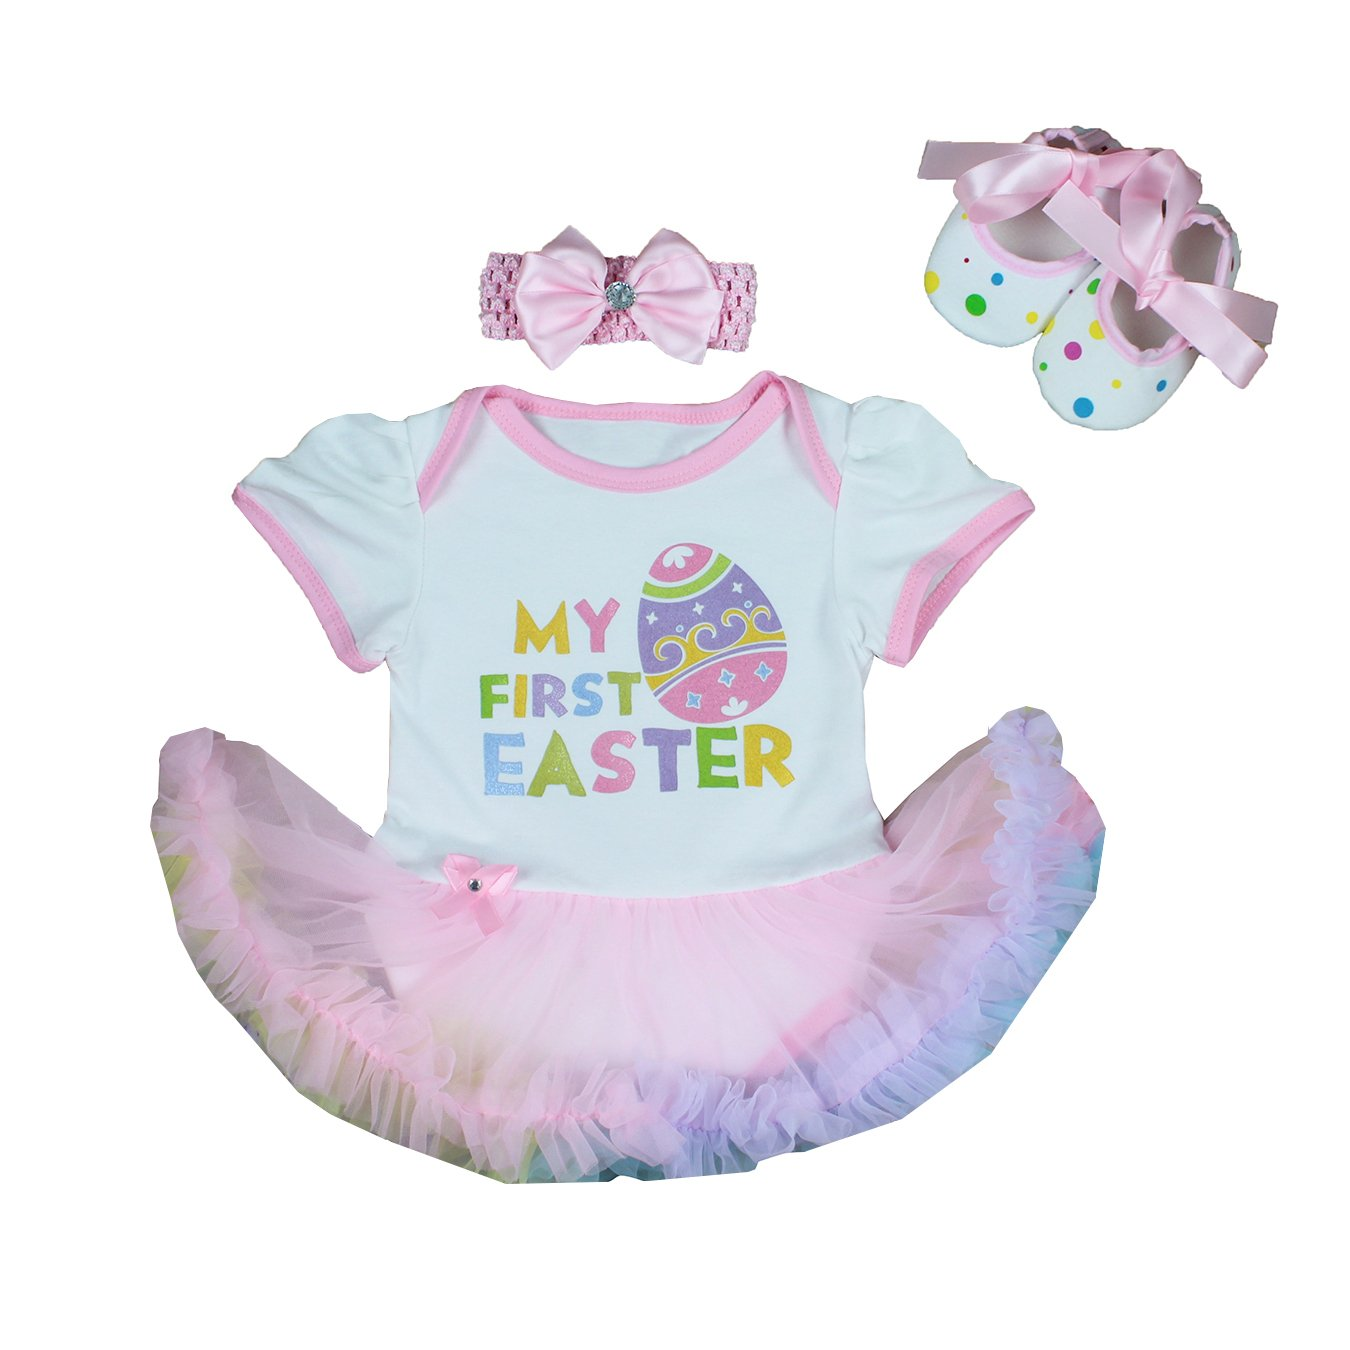 54dc77a47 Online Cheap wholesale MyCHIC Infant Baby Girl My First Easter Outfits Tutu  Romper Dress Headband Shoes Set Skirt Sets Suppliers